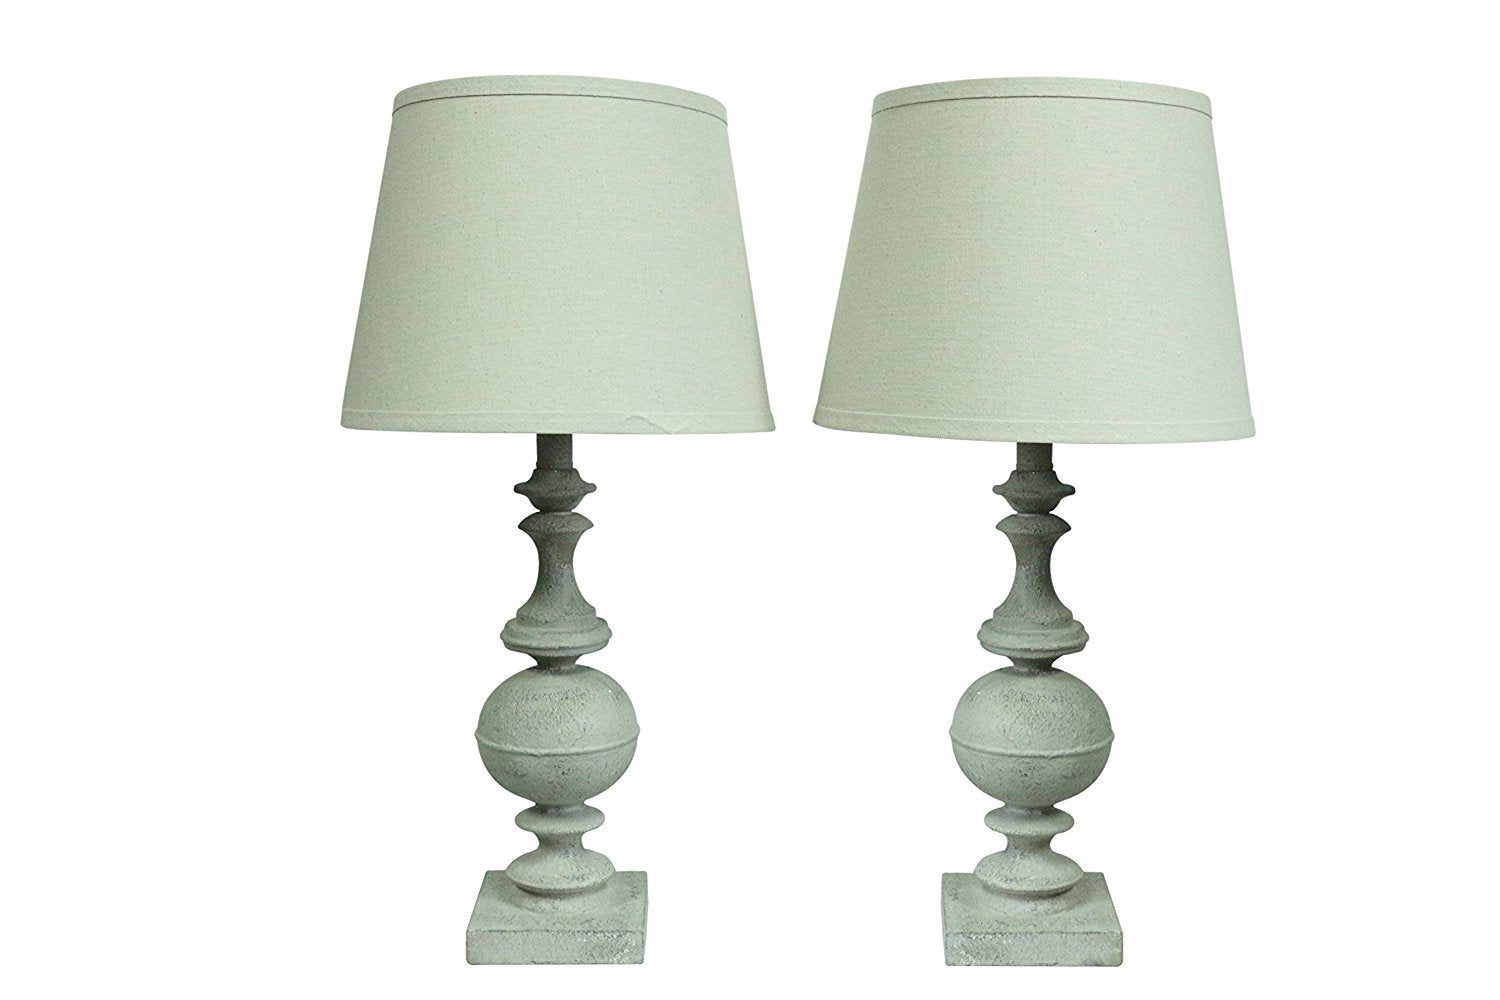 Set of 2 Norville Table Lamps with Shades